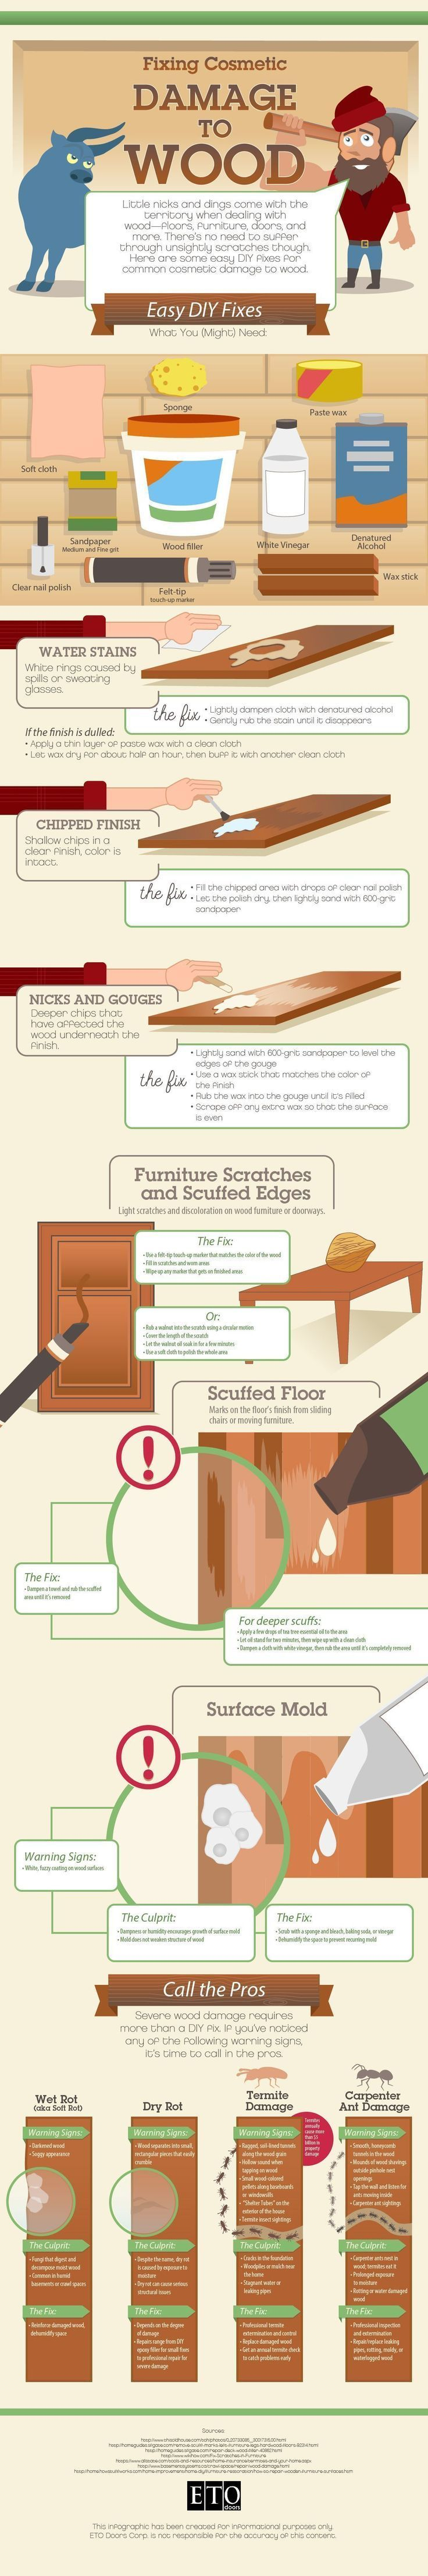 small resolution of fixing cosmetic damage to wood infographic woodworkinginfographic diy ideas in 2018 pinterest houtbewerking hout and houtwerk